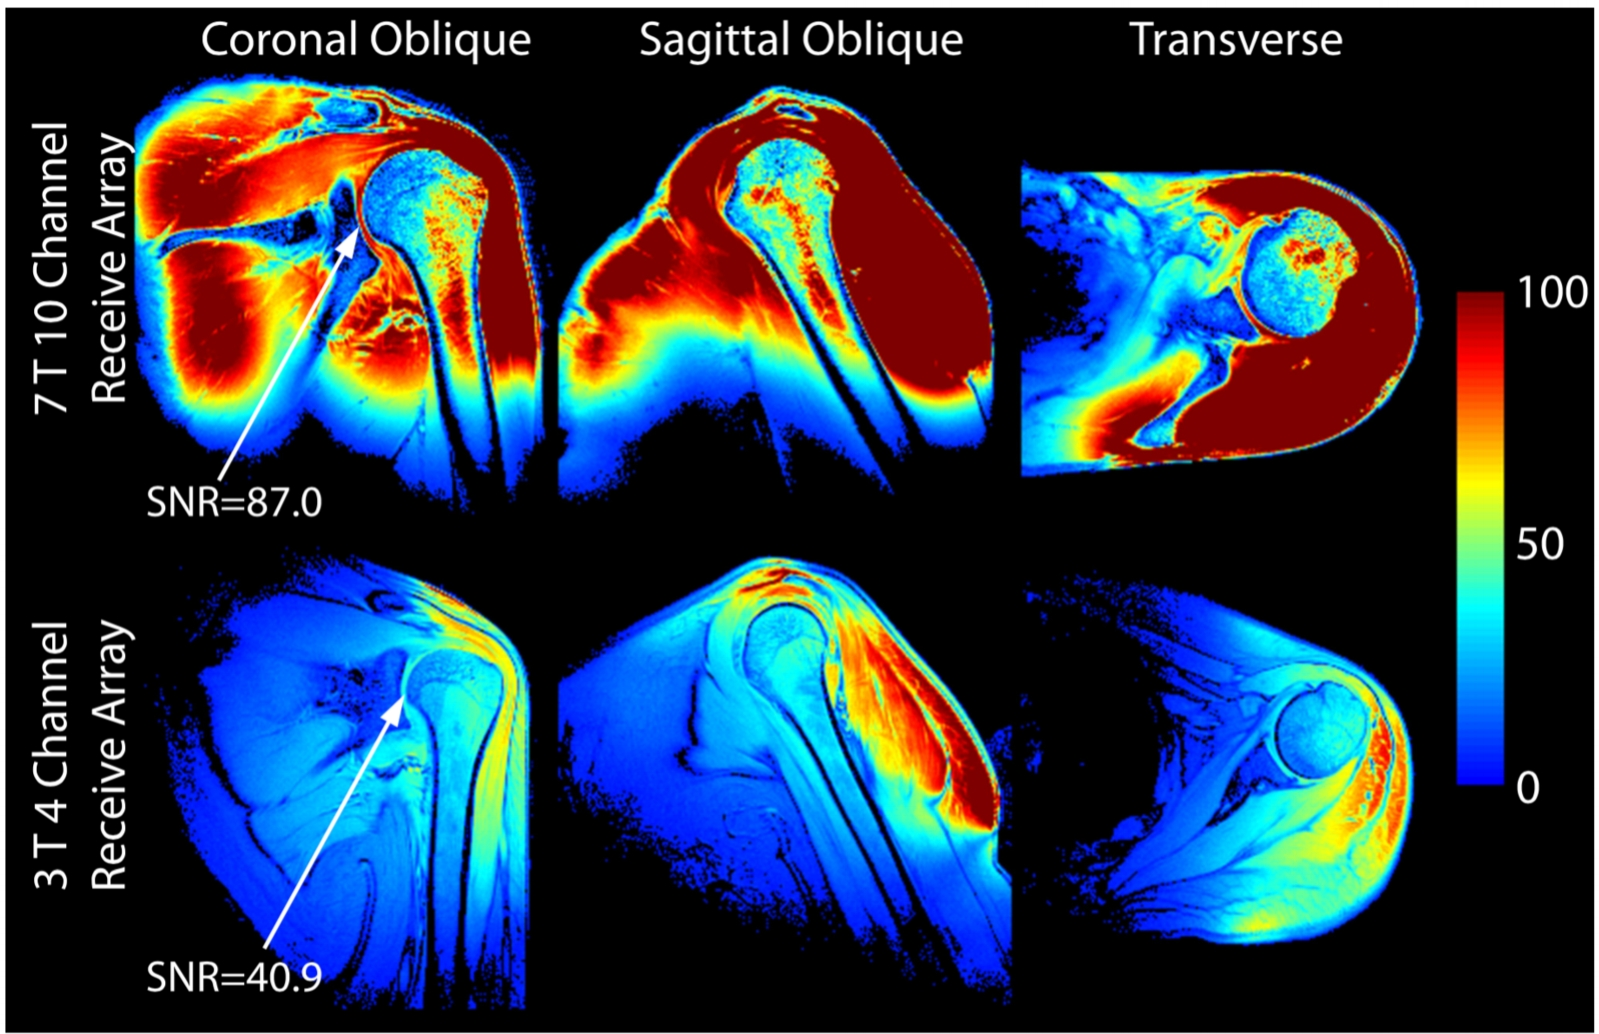 Our hardware provides a two-fold SNR gain in the articular cartilage